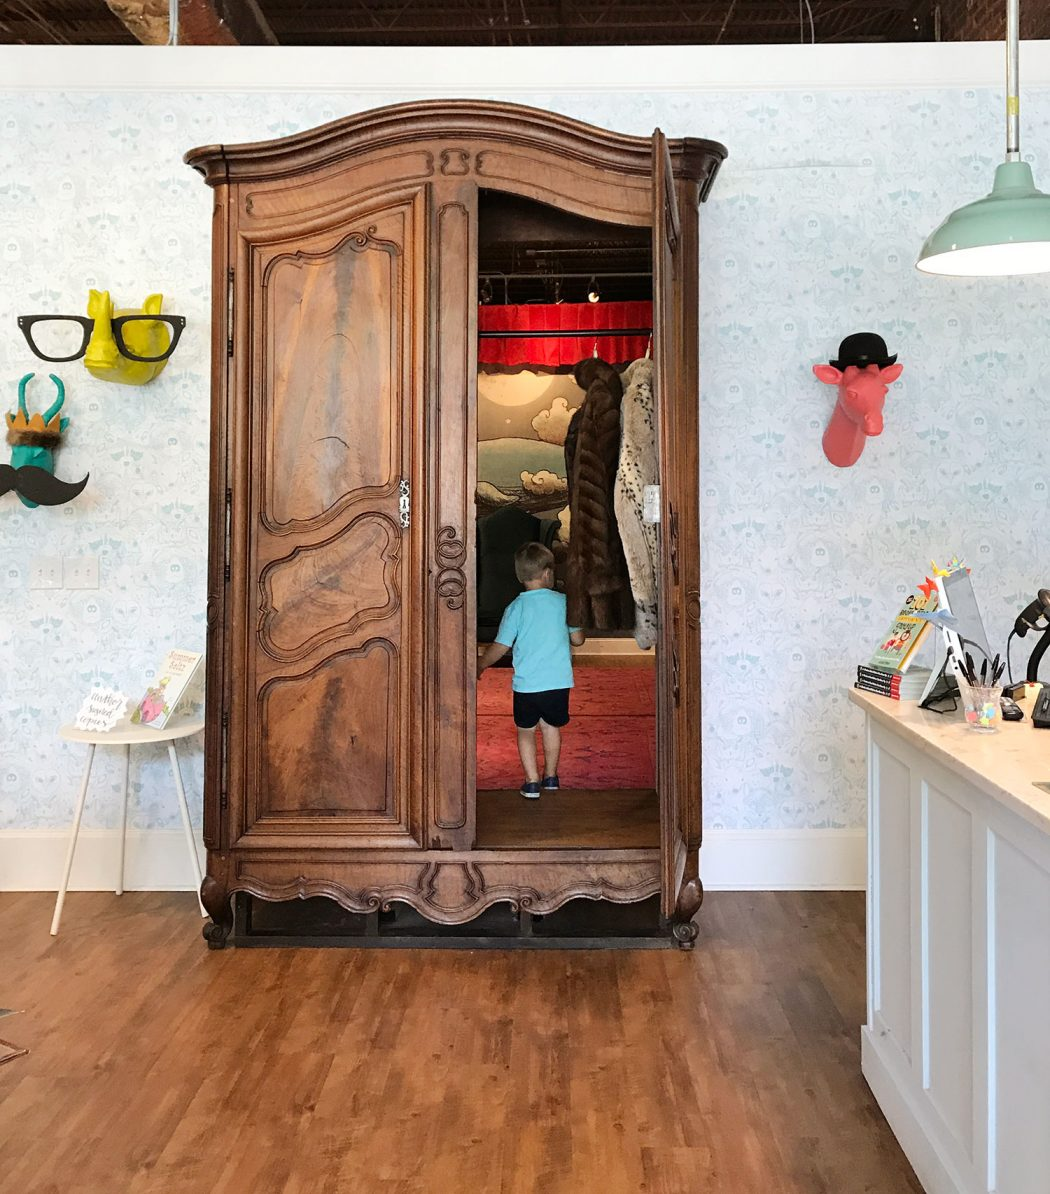 1000 Images About Children S Bedroom Ideas On Pinterest: Kids Room Ideas From The Cutest Bookstore Ever